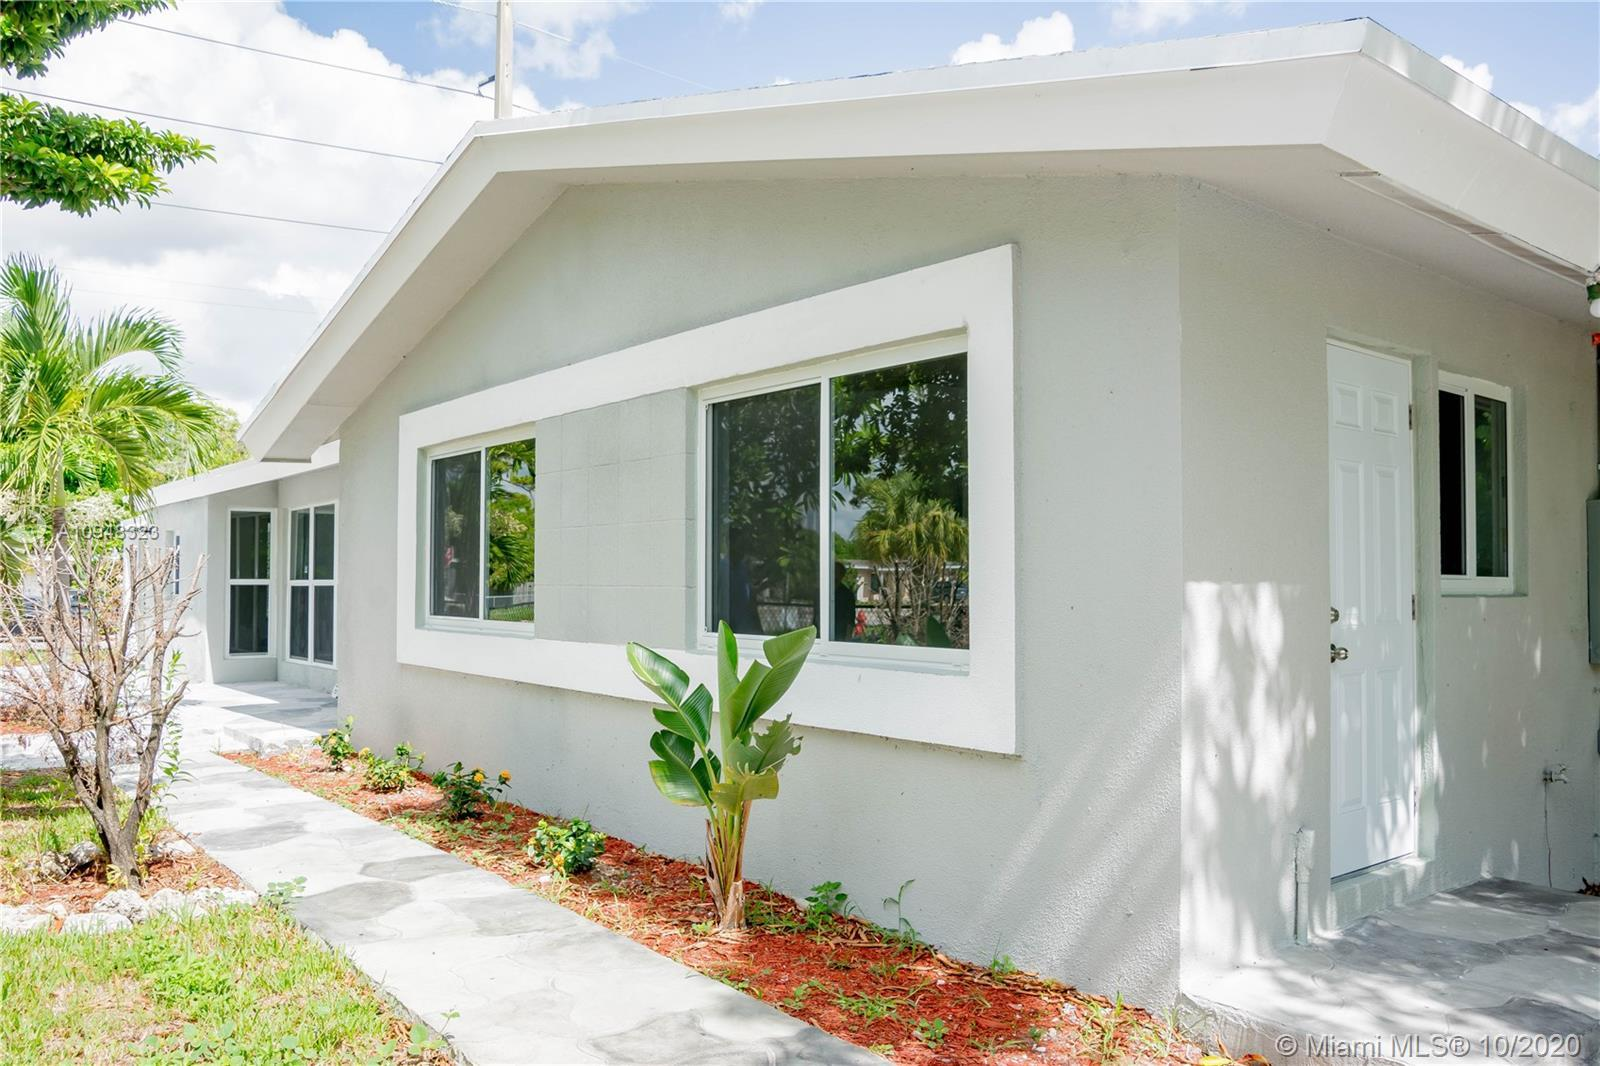 Rental property for sale that's currently leased for $2,300 per month until October 2021. The proper